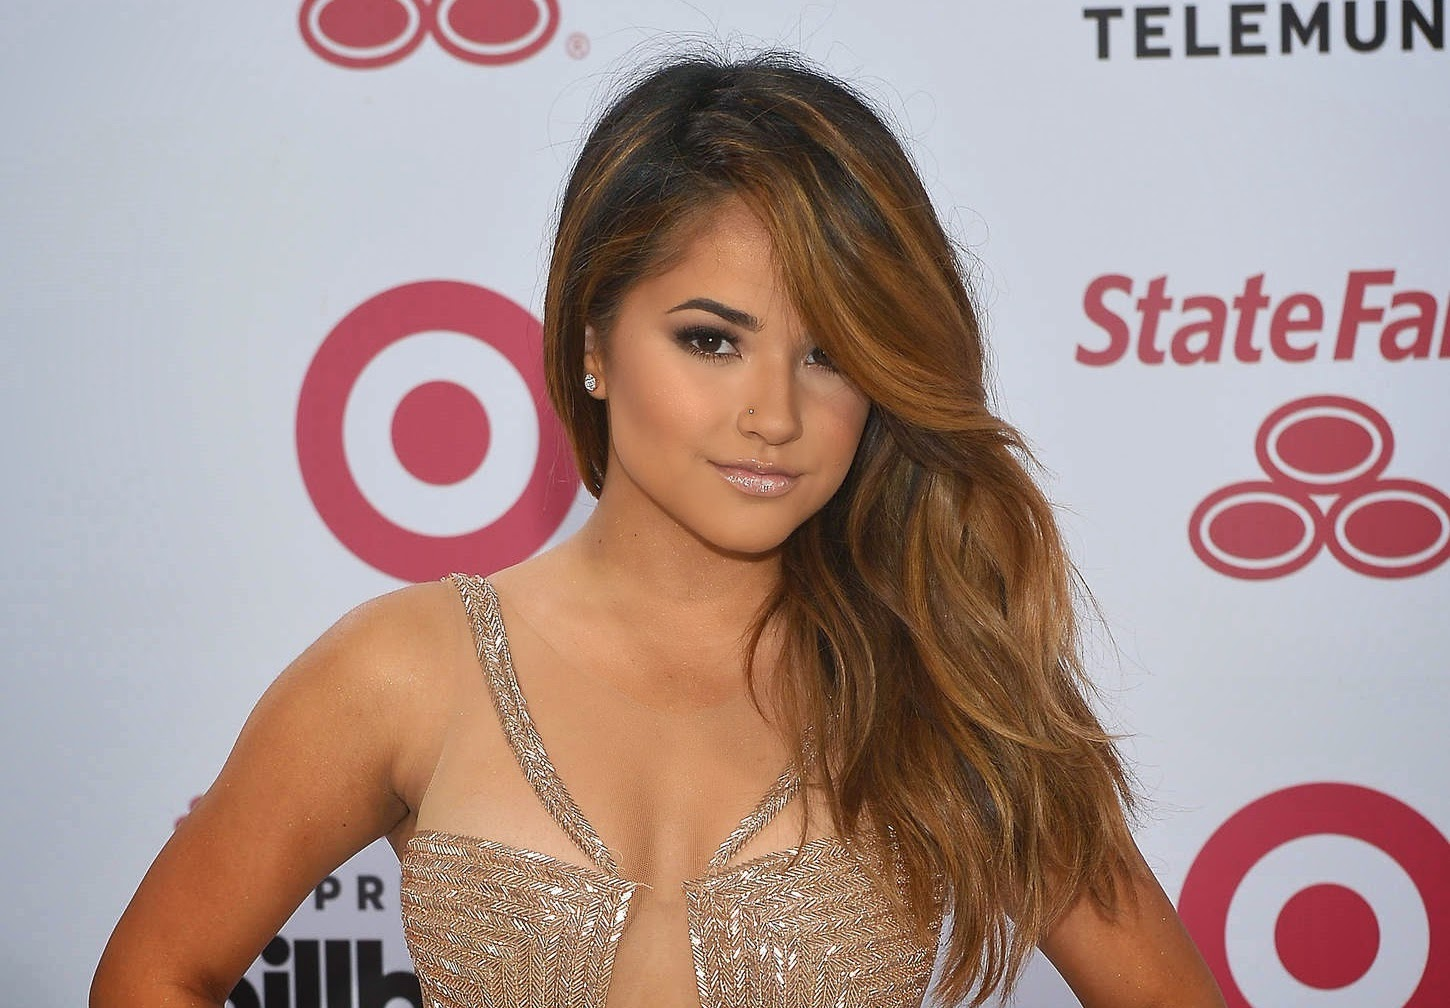 Becky G in a revealing outfit at the 2015 Billboard Latin Music Awards in Miami